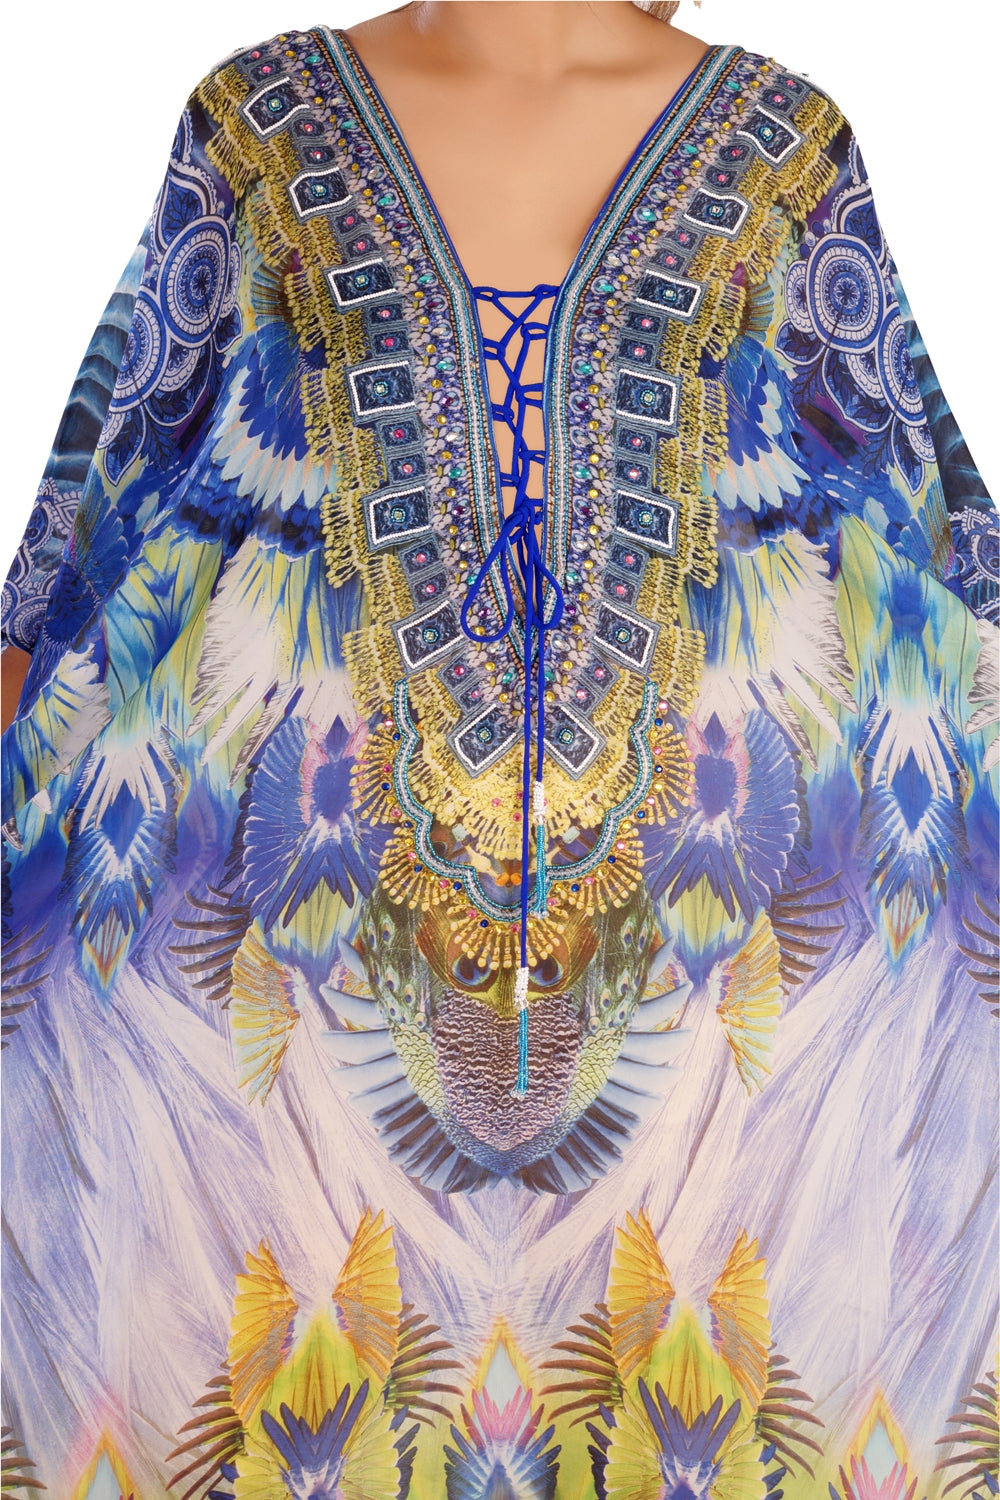 Sunflowers Circular Prints lace up silk kaftans